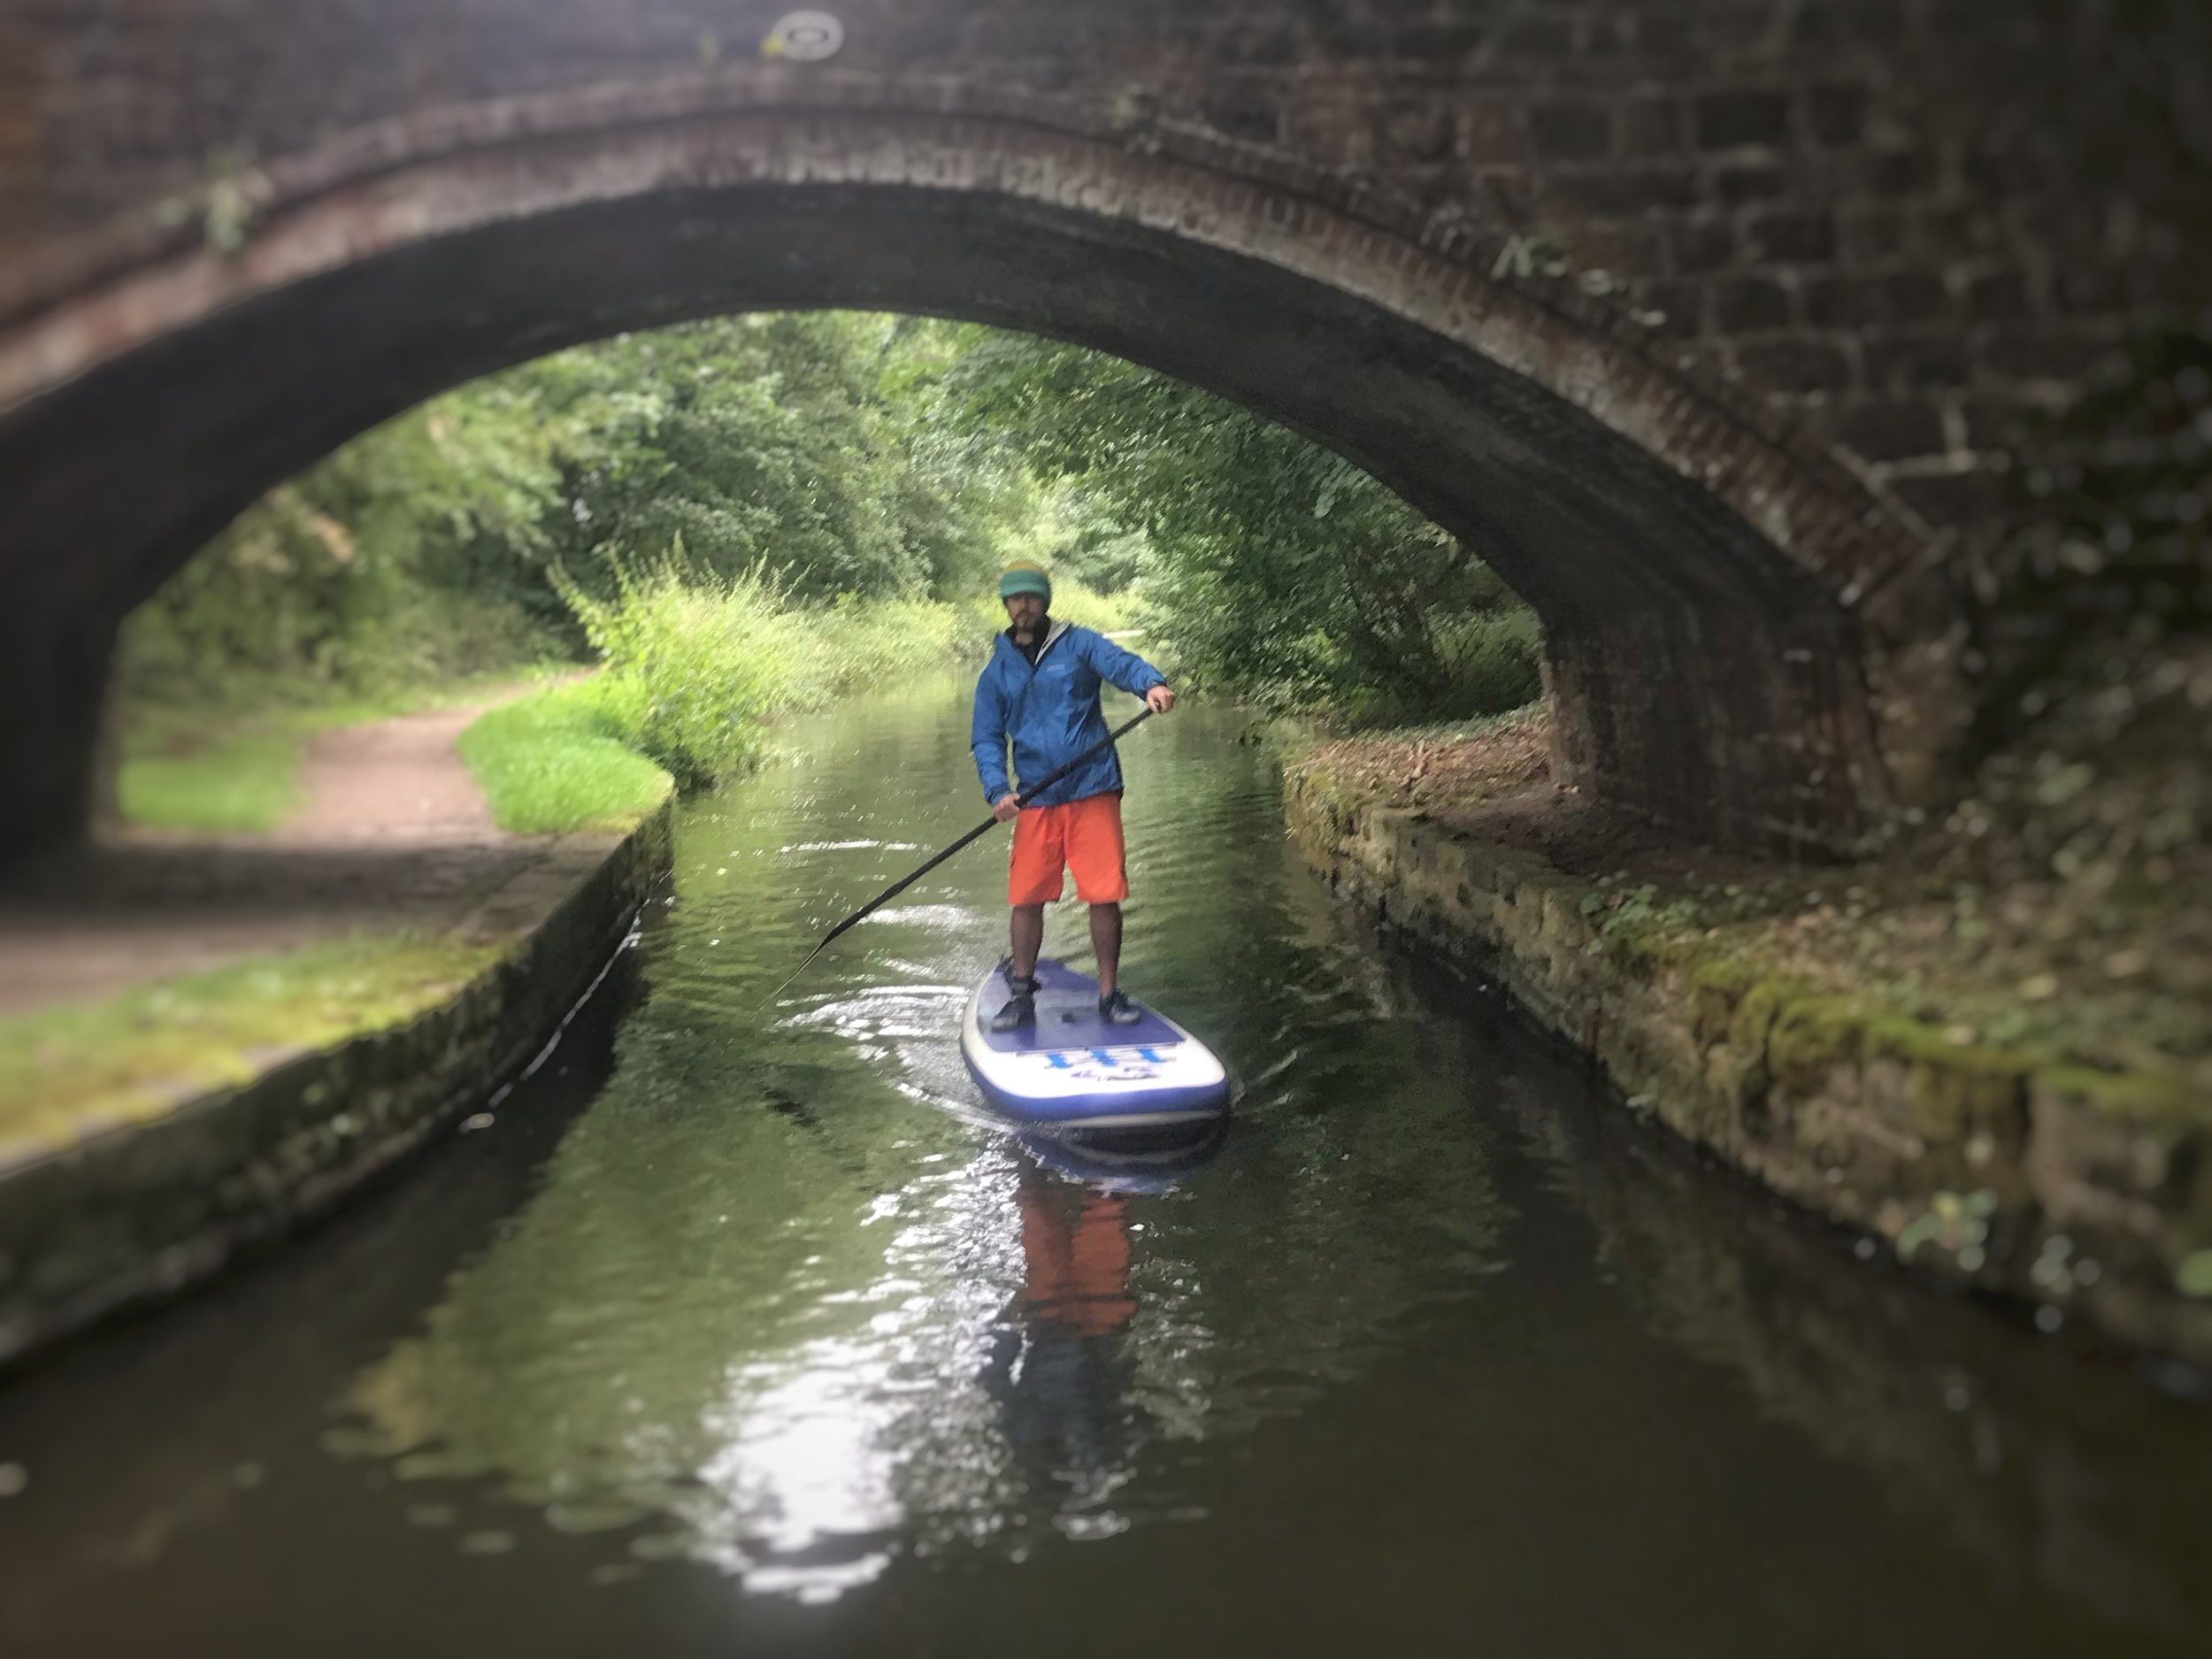 Paddleboarding on the Chesterfield Canal